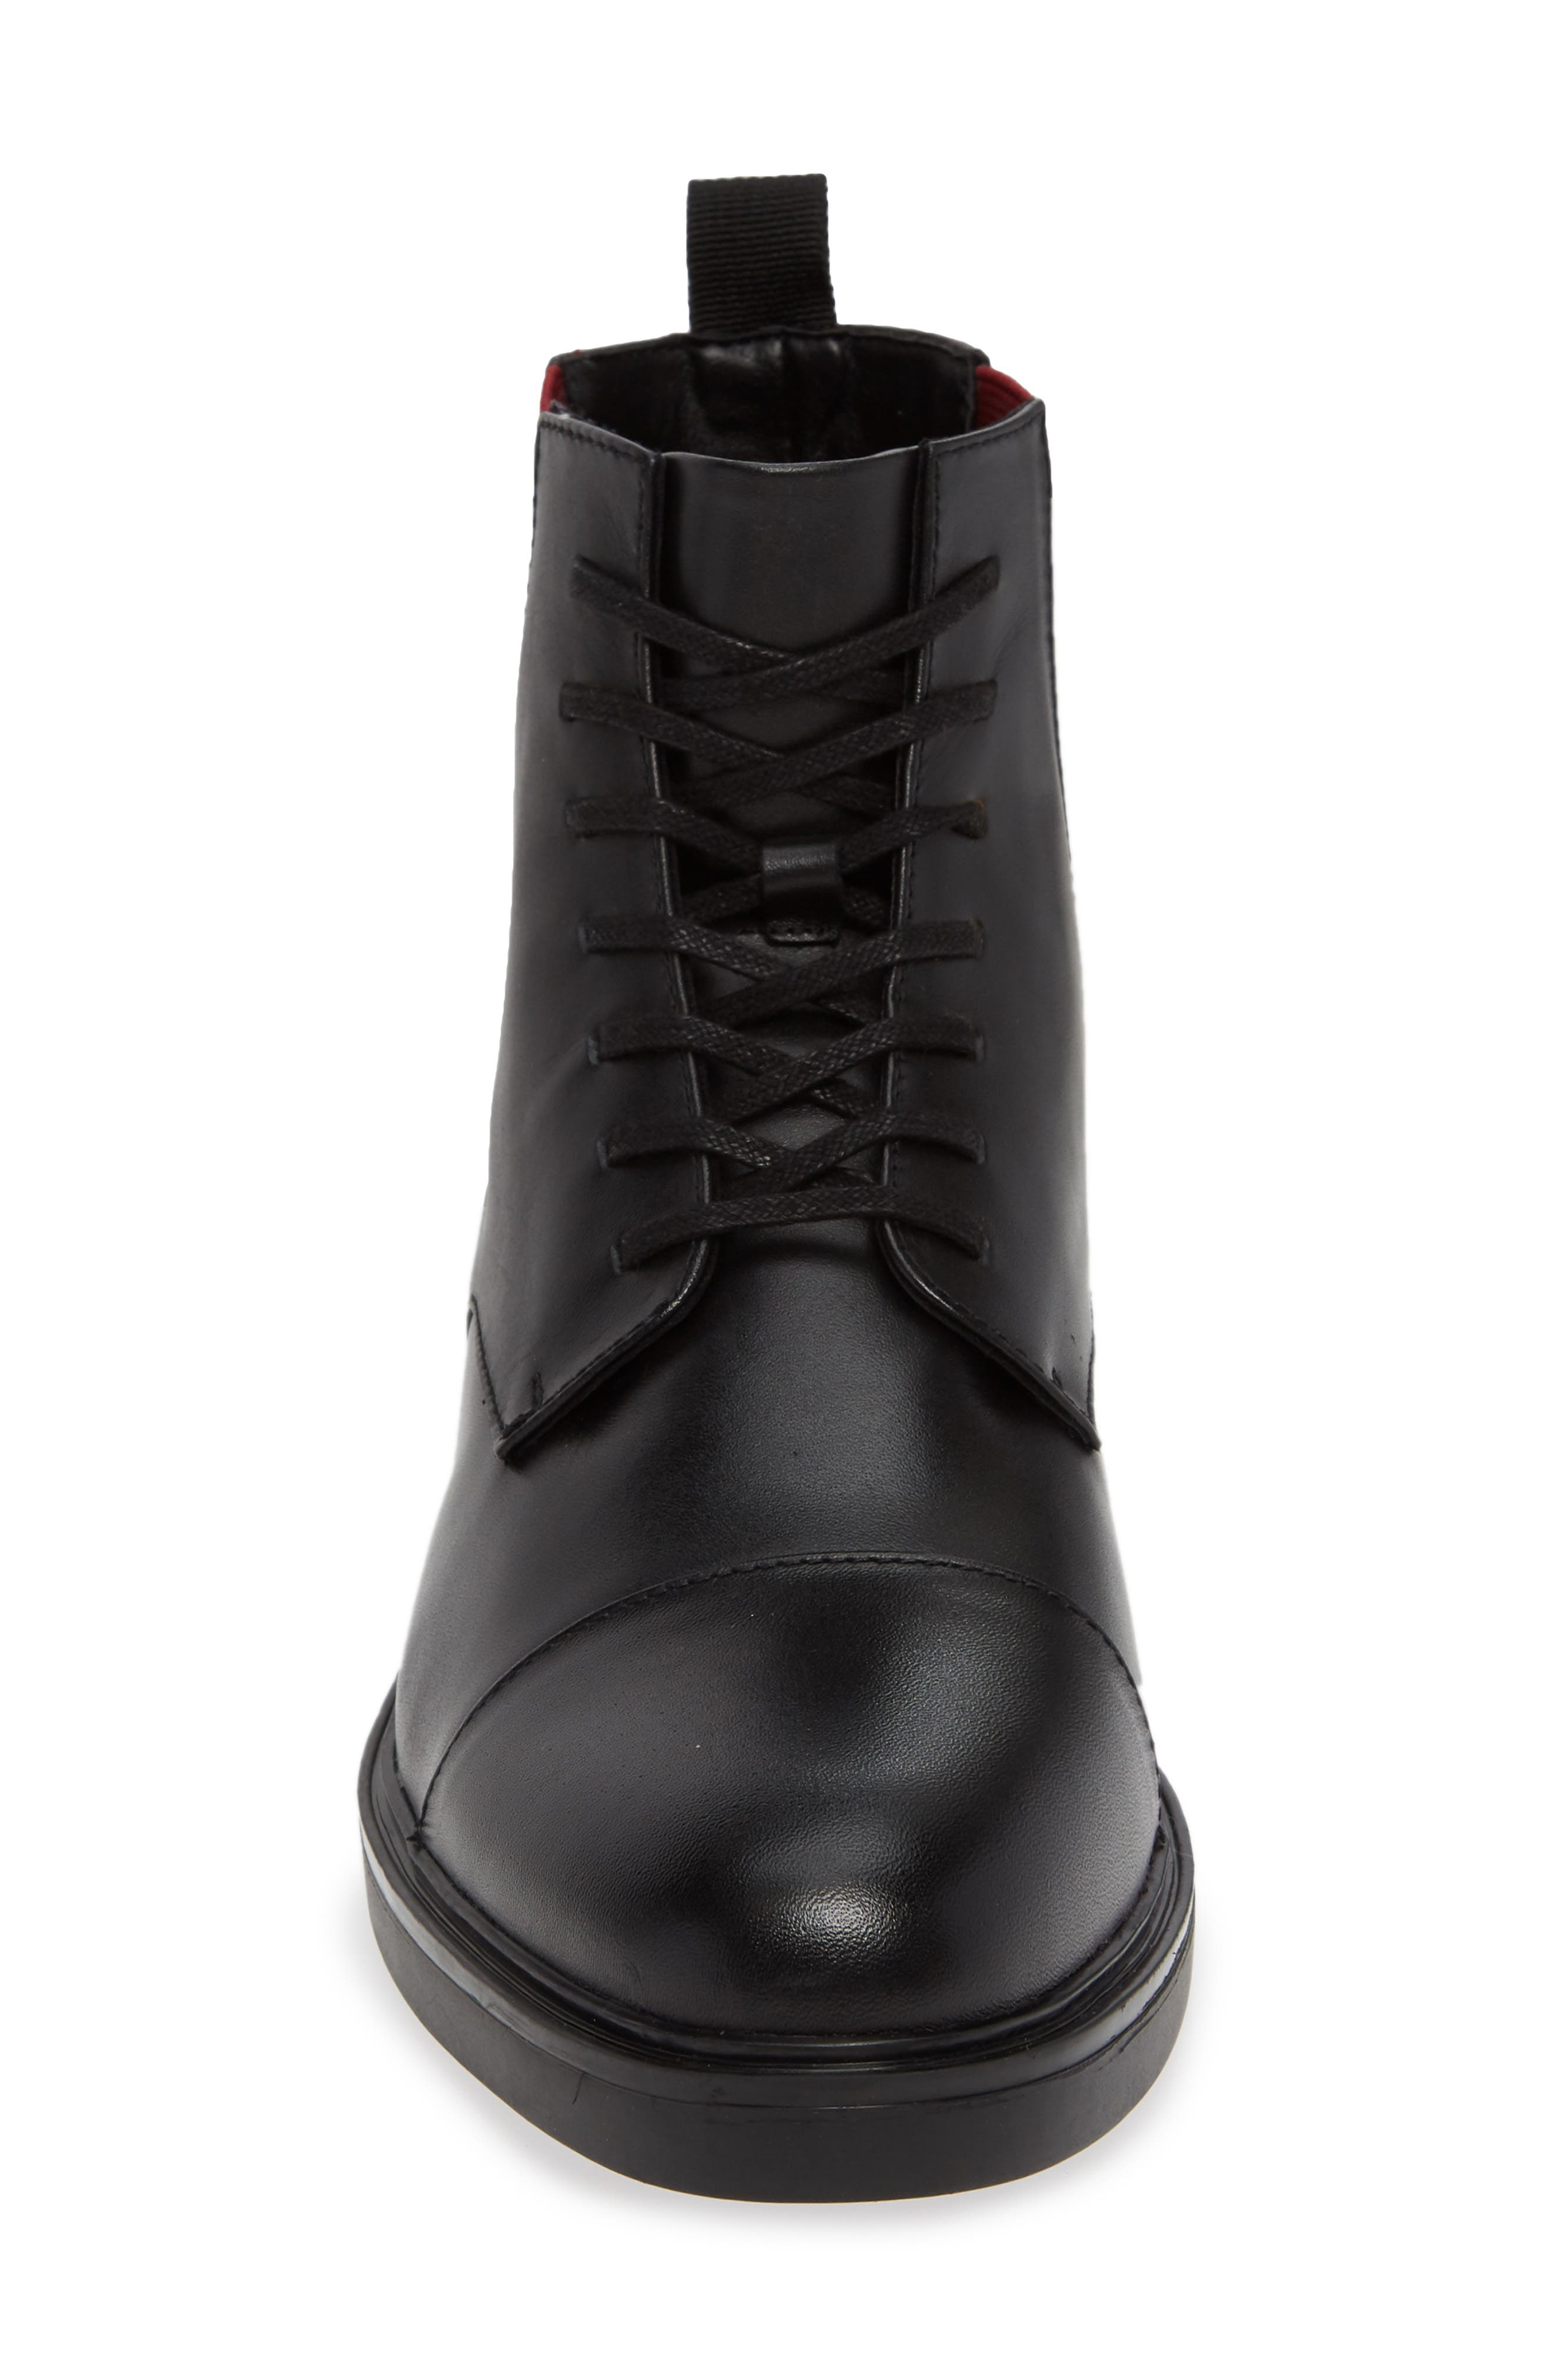 Dameon Lace-Up Boot,                             Alternate thumbnail 4, color,                             BLACK/ RED ROCK LEATHER